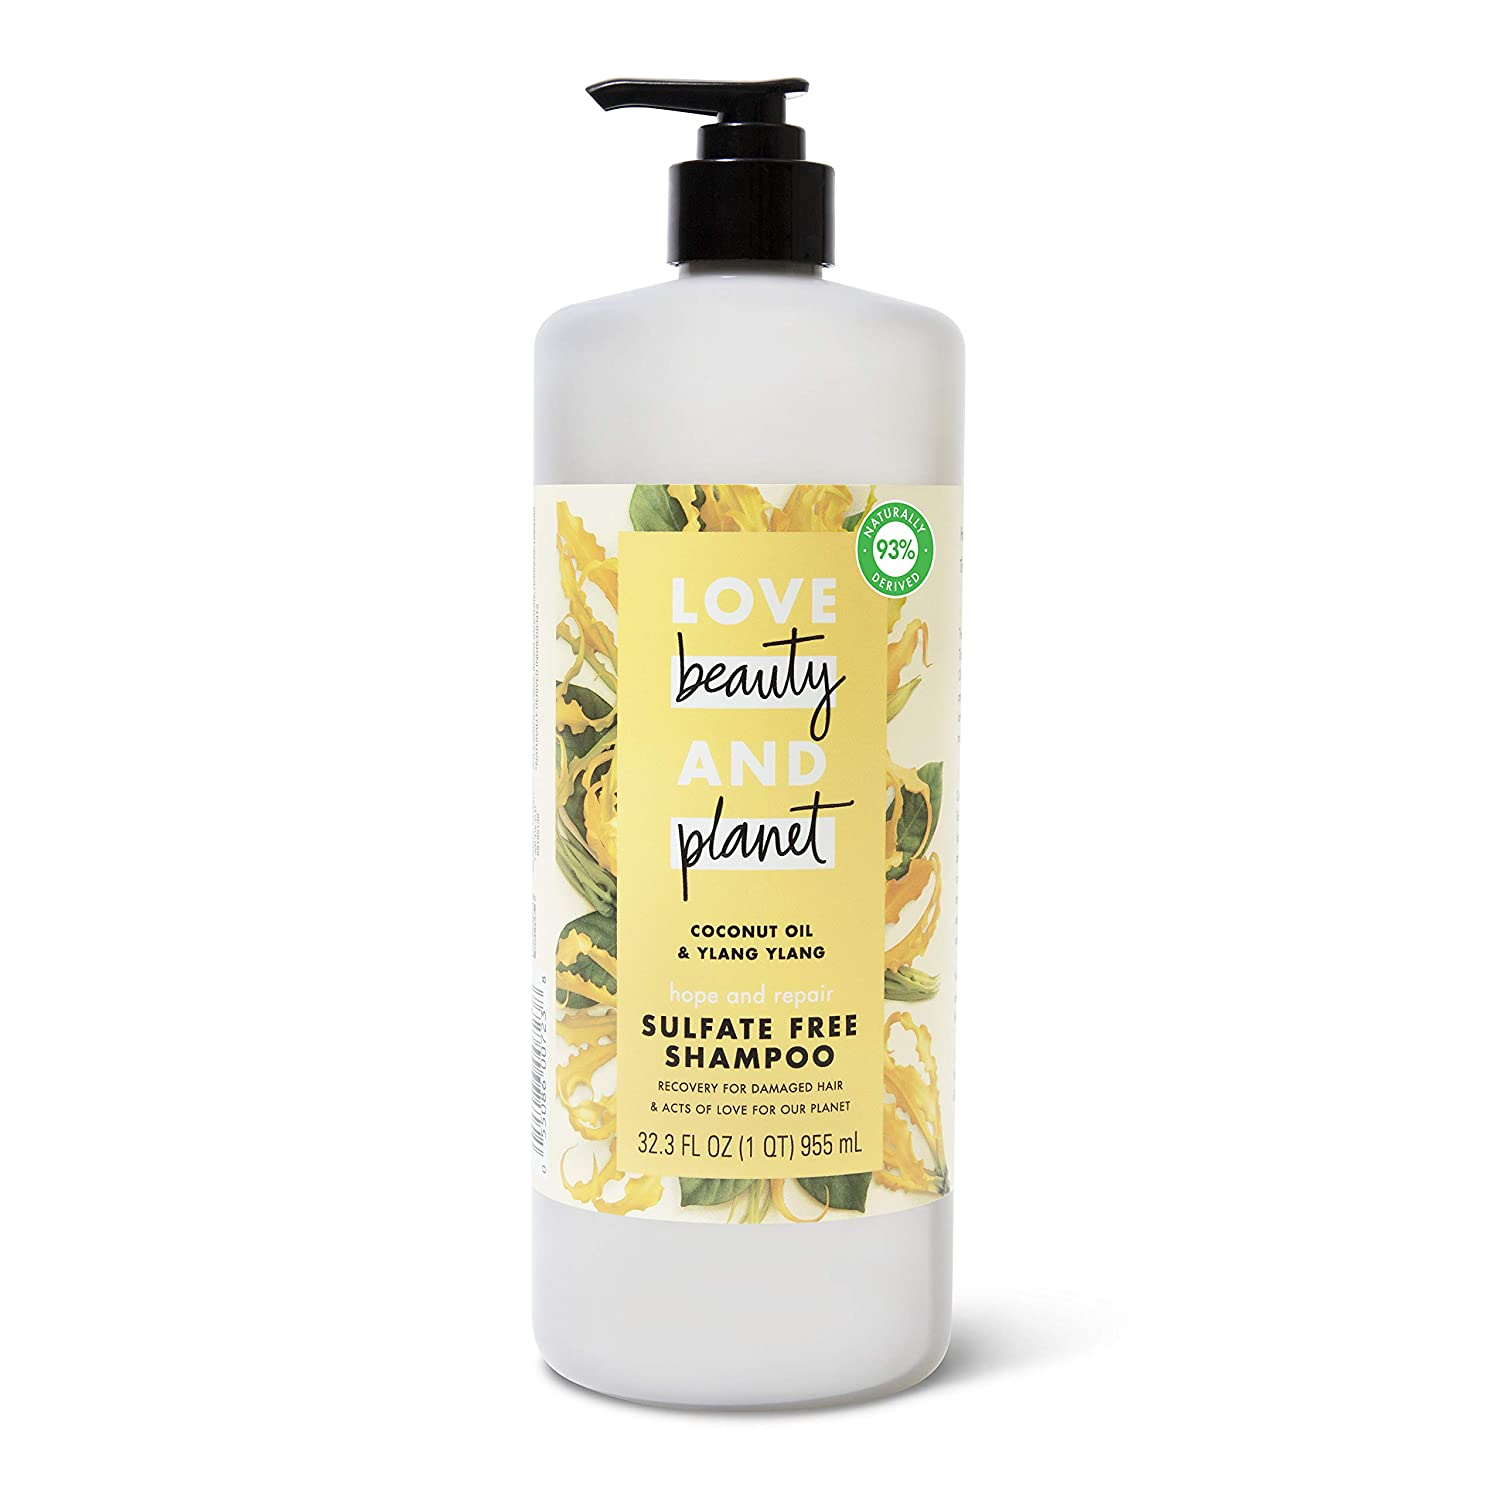 Love Beauty And Planet Hope Max 52% OFF Hair Shampoo Repair Free Sulfate- Fees free